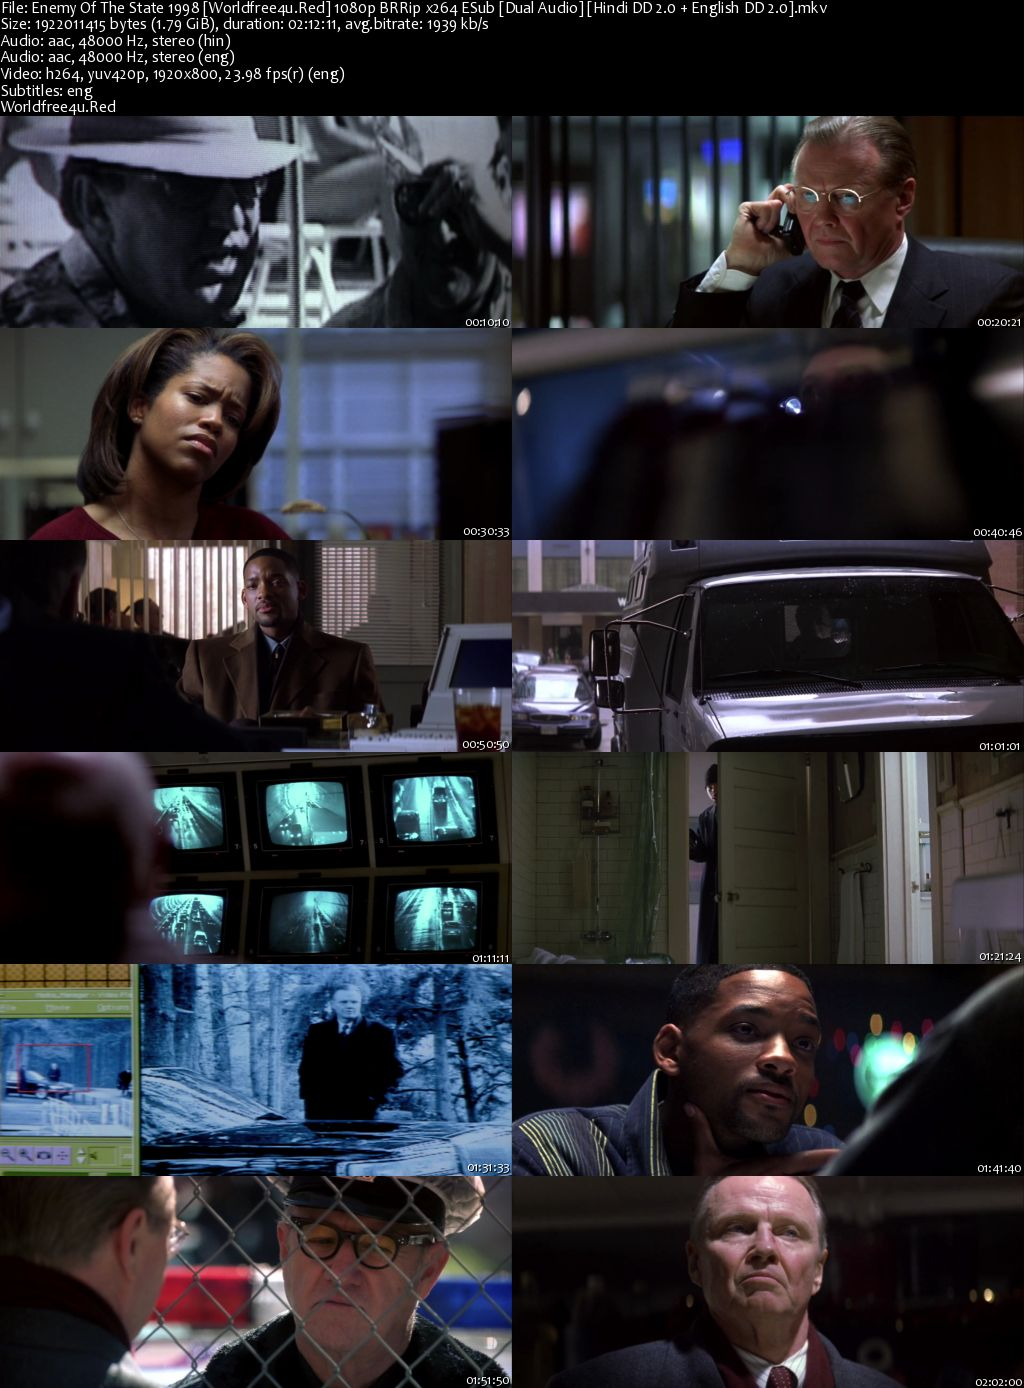 Enemy Of The State 1998 BRRip 1080p Dual Audio